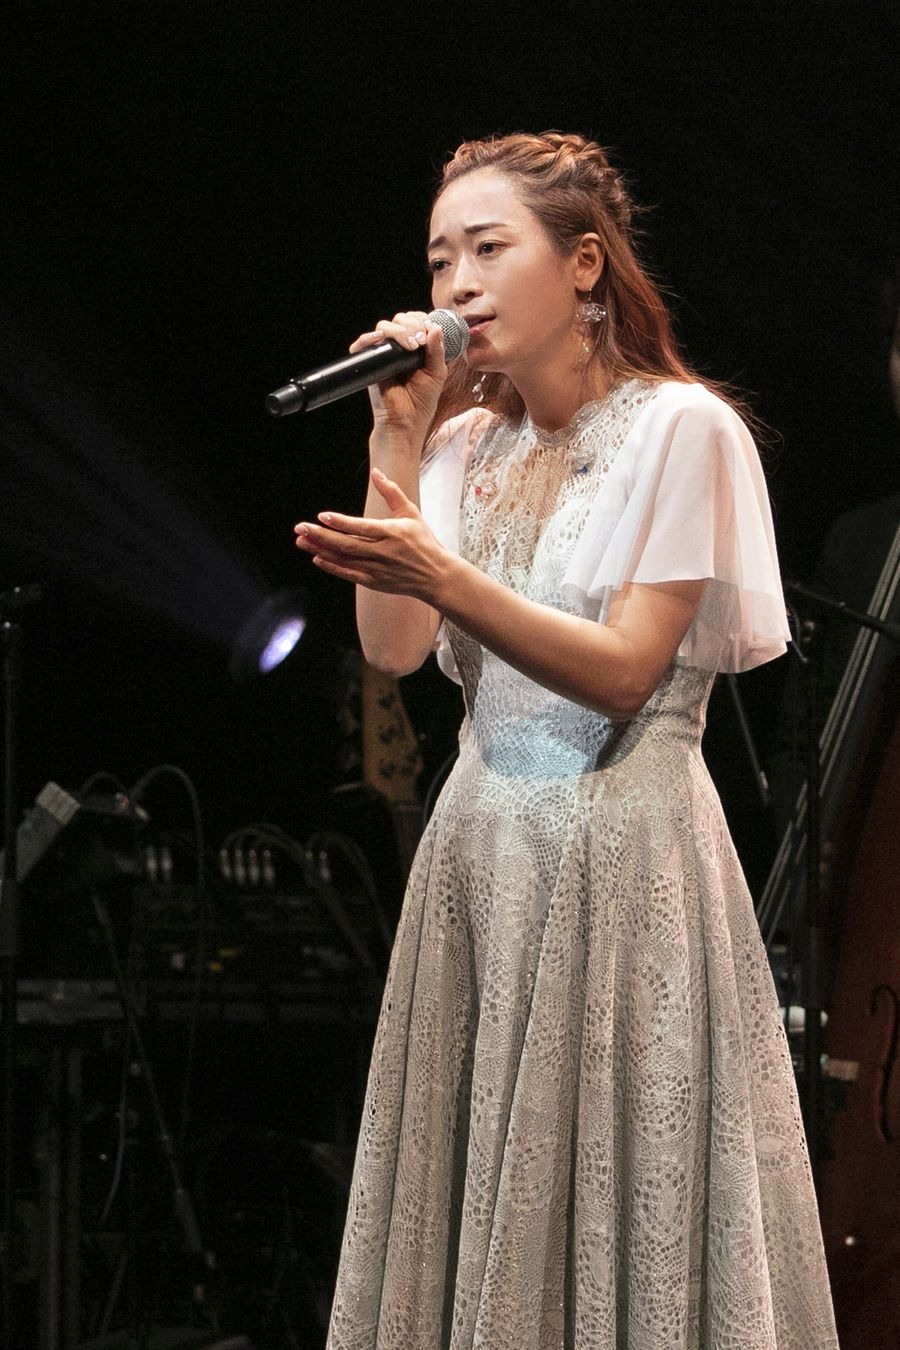 「Wakana Spring Live 2020~magic moment~」